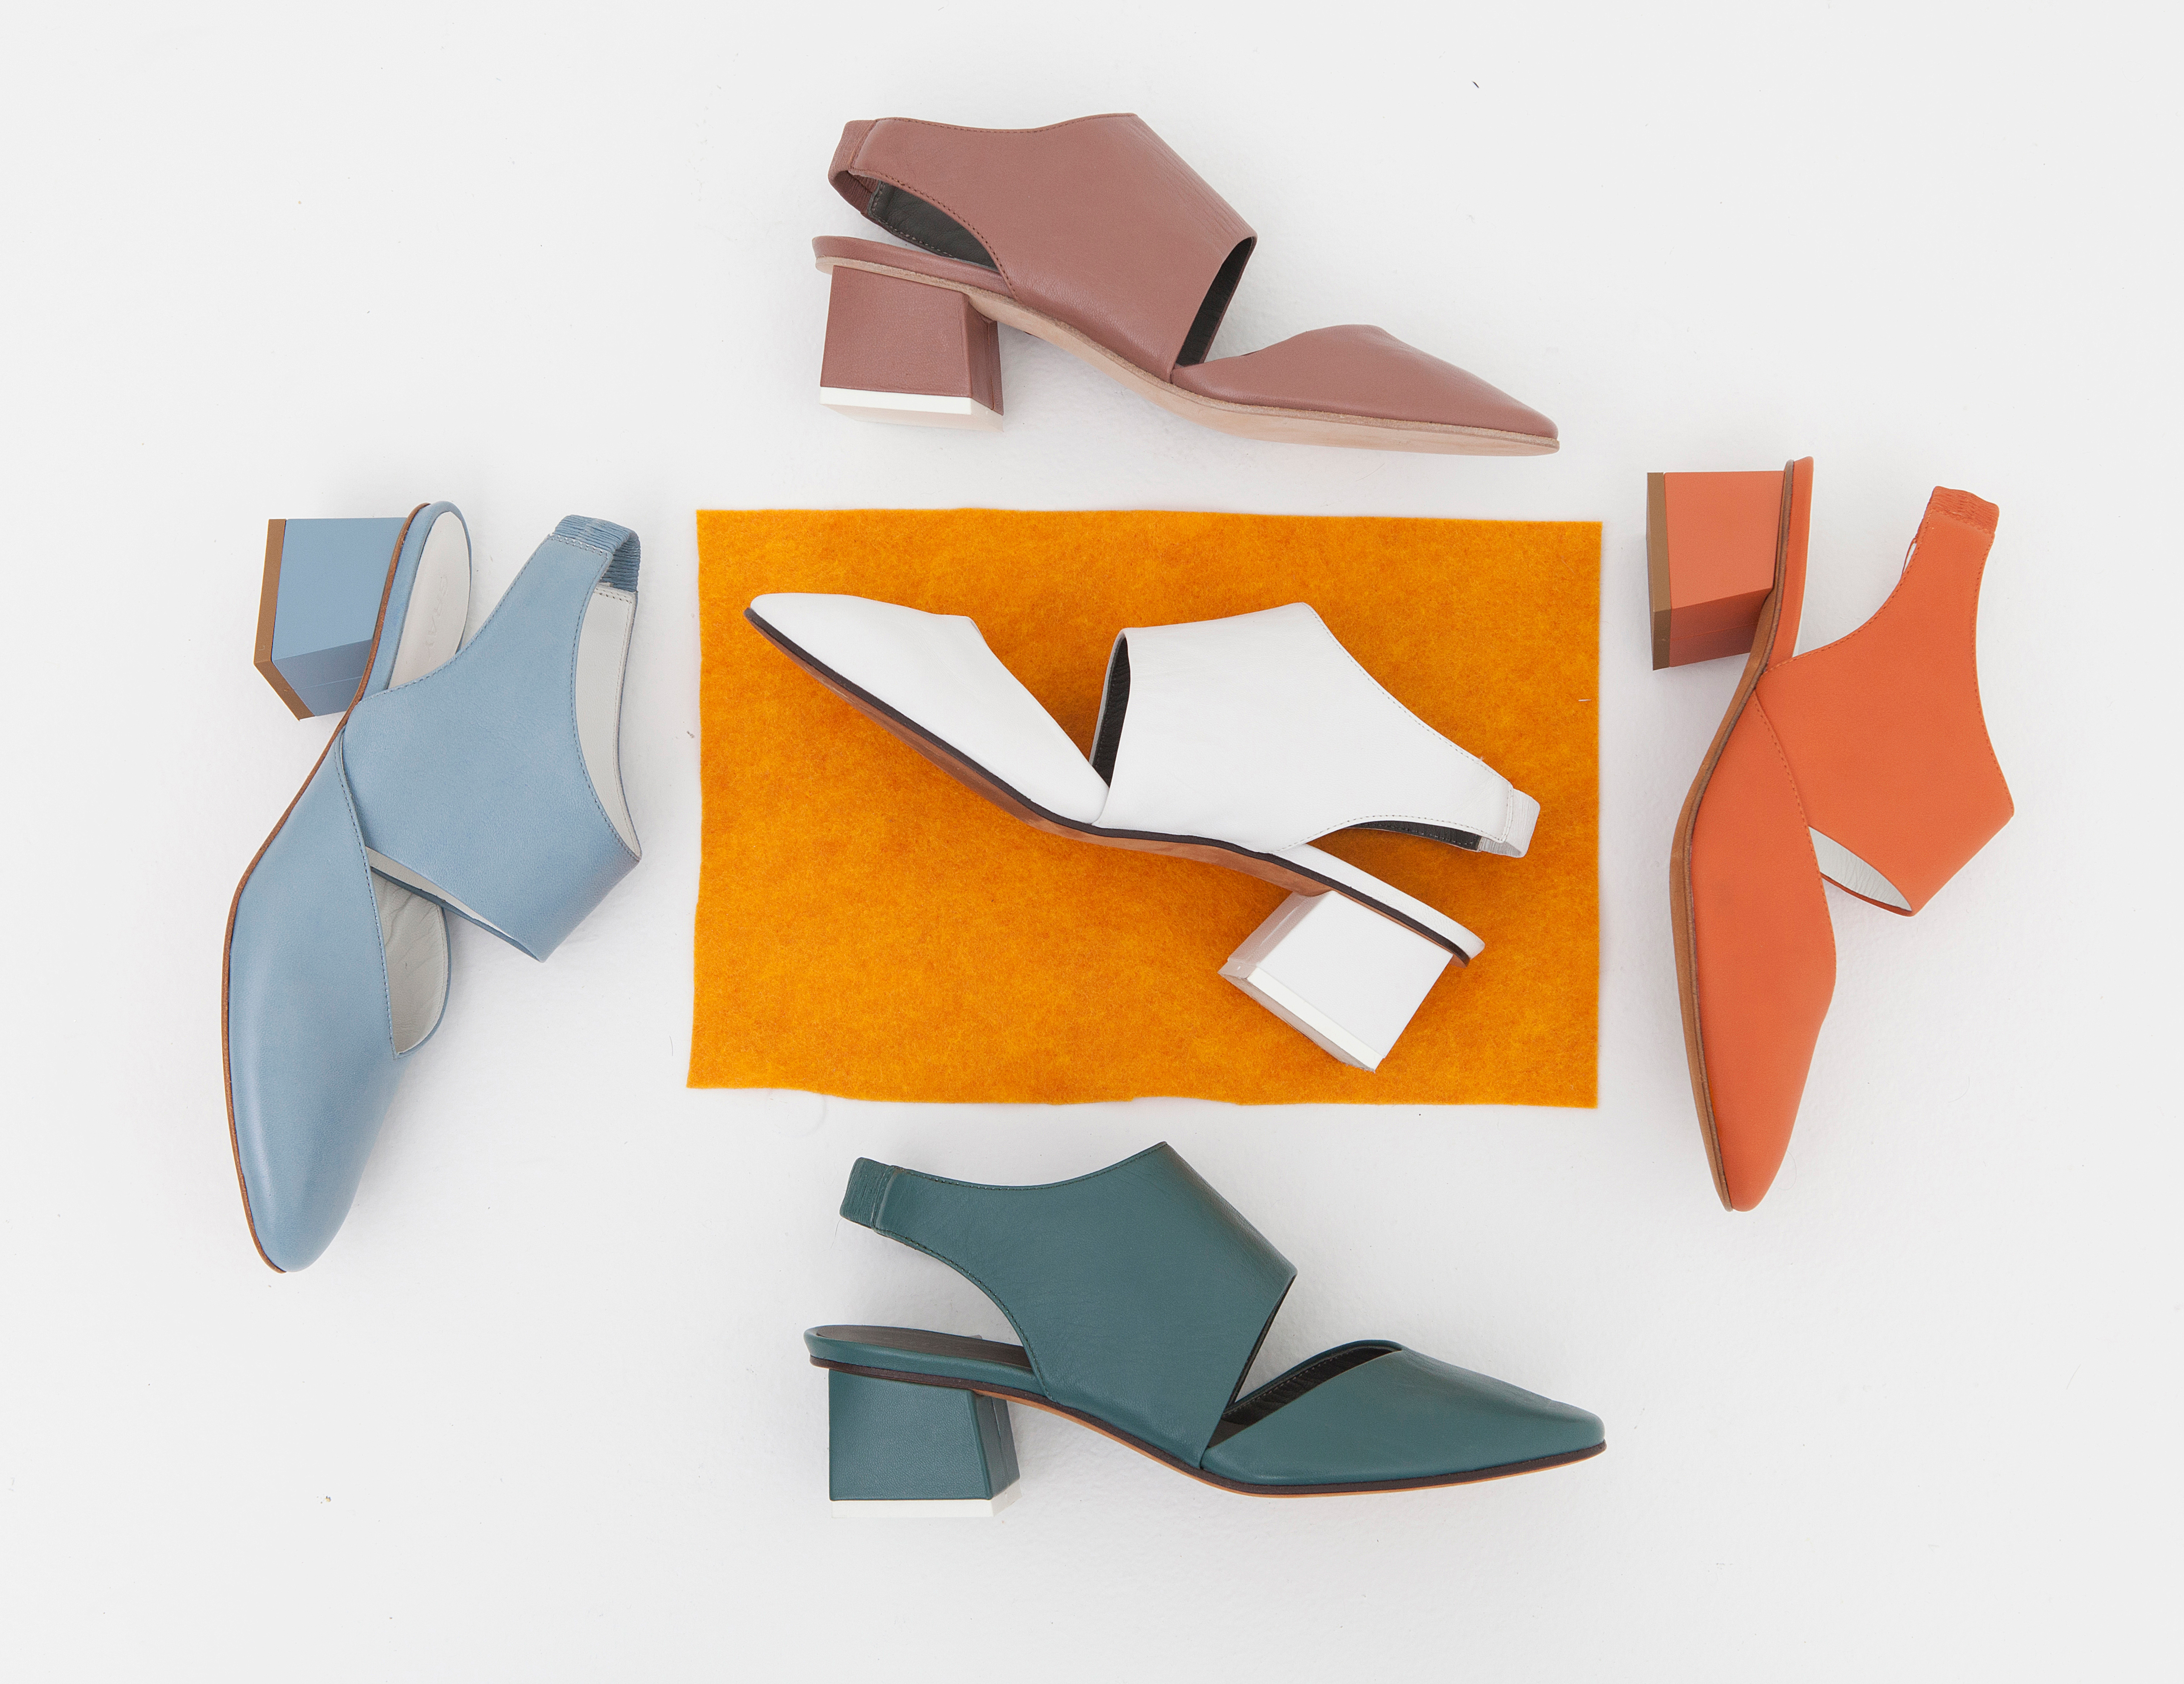 Sandals in muted colors